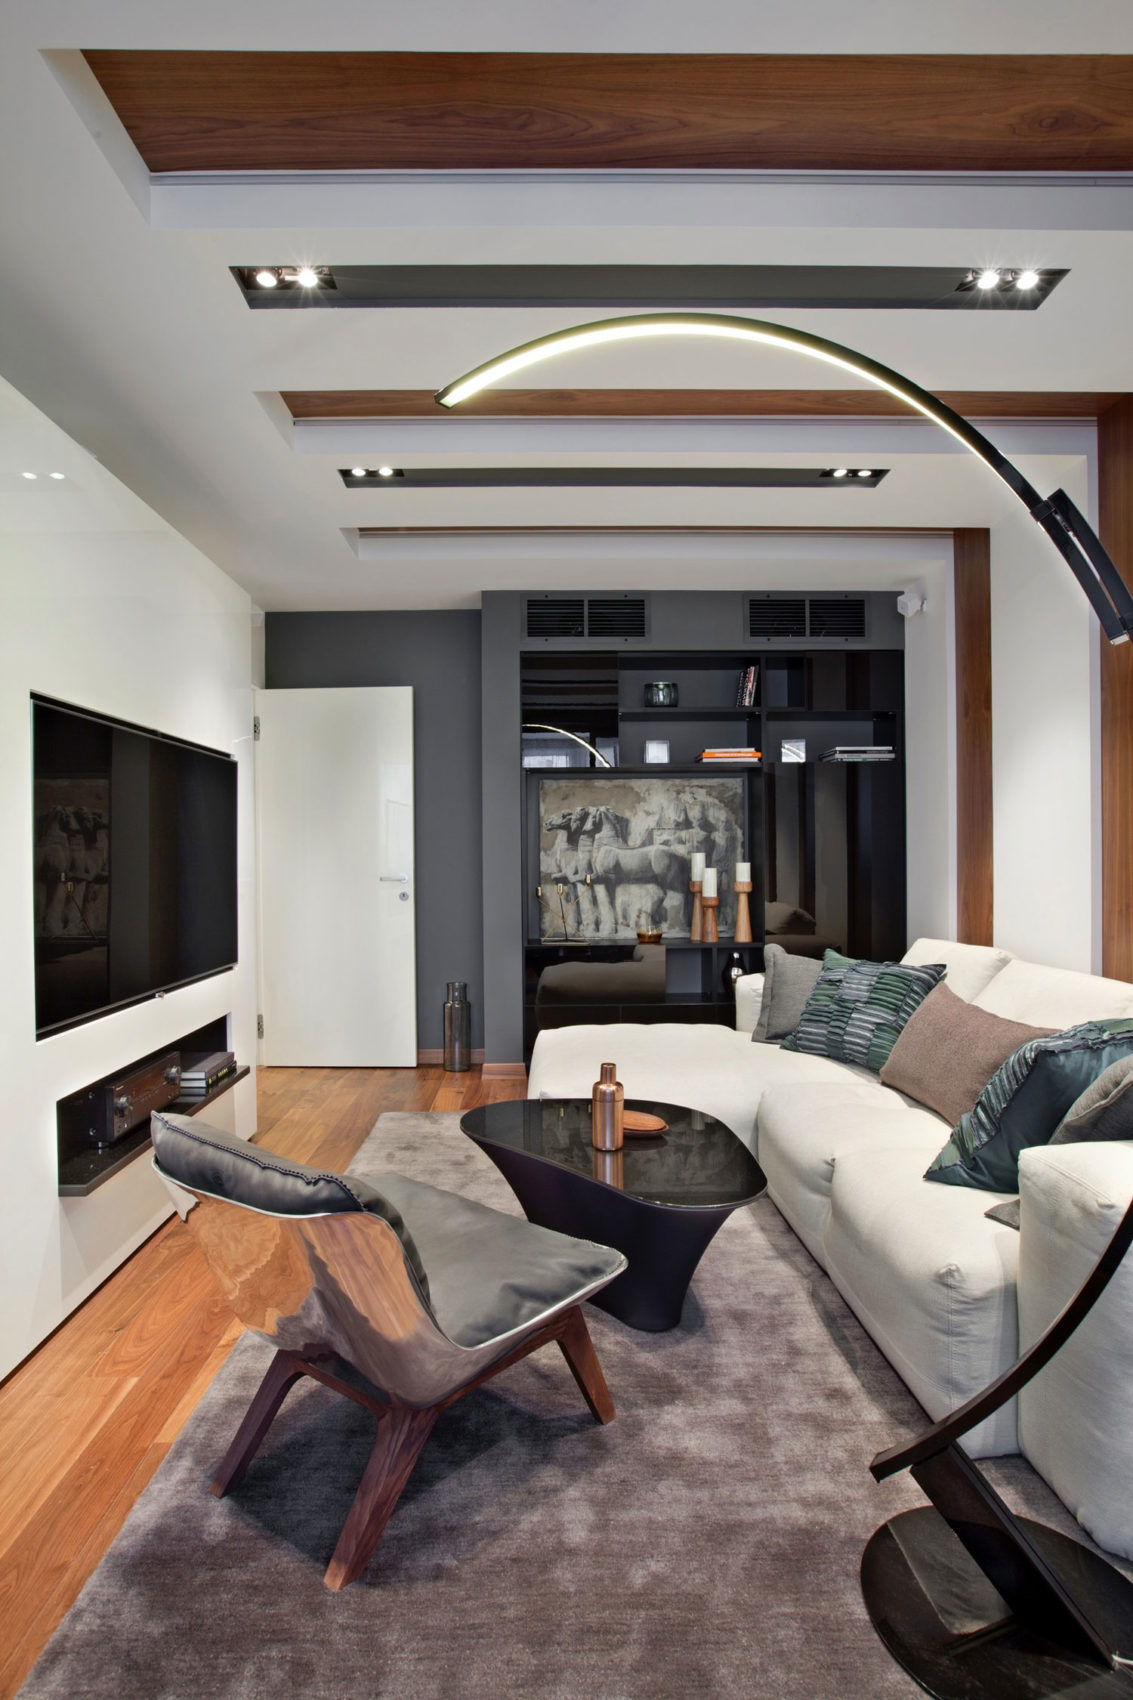 Apartment for a Young Man by Design3 (5)